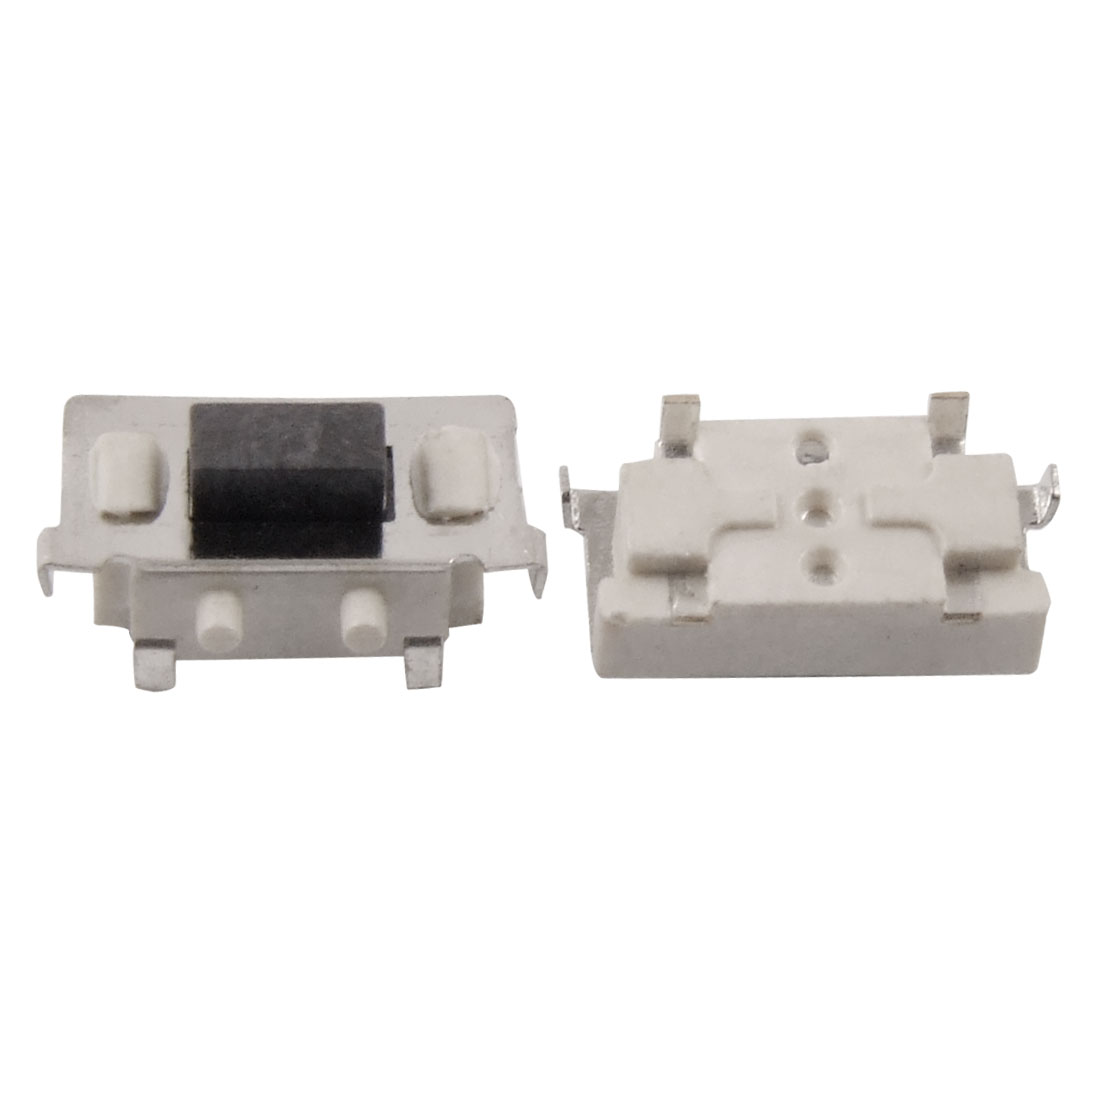 50 Pcs Momentary Tact Tactile Push Button Switch SMD SMT PCB 2 Pin 3 x 6 x 3.4mm